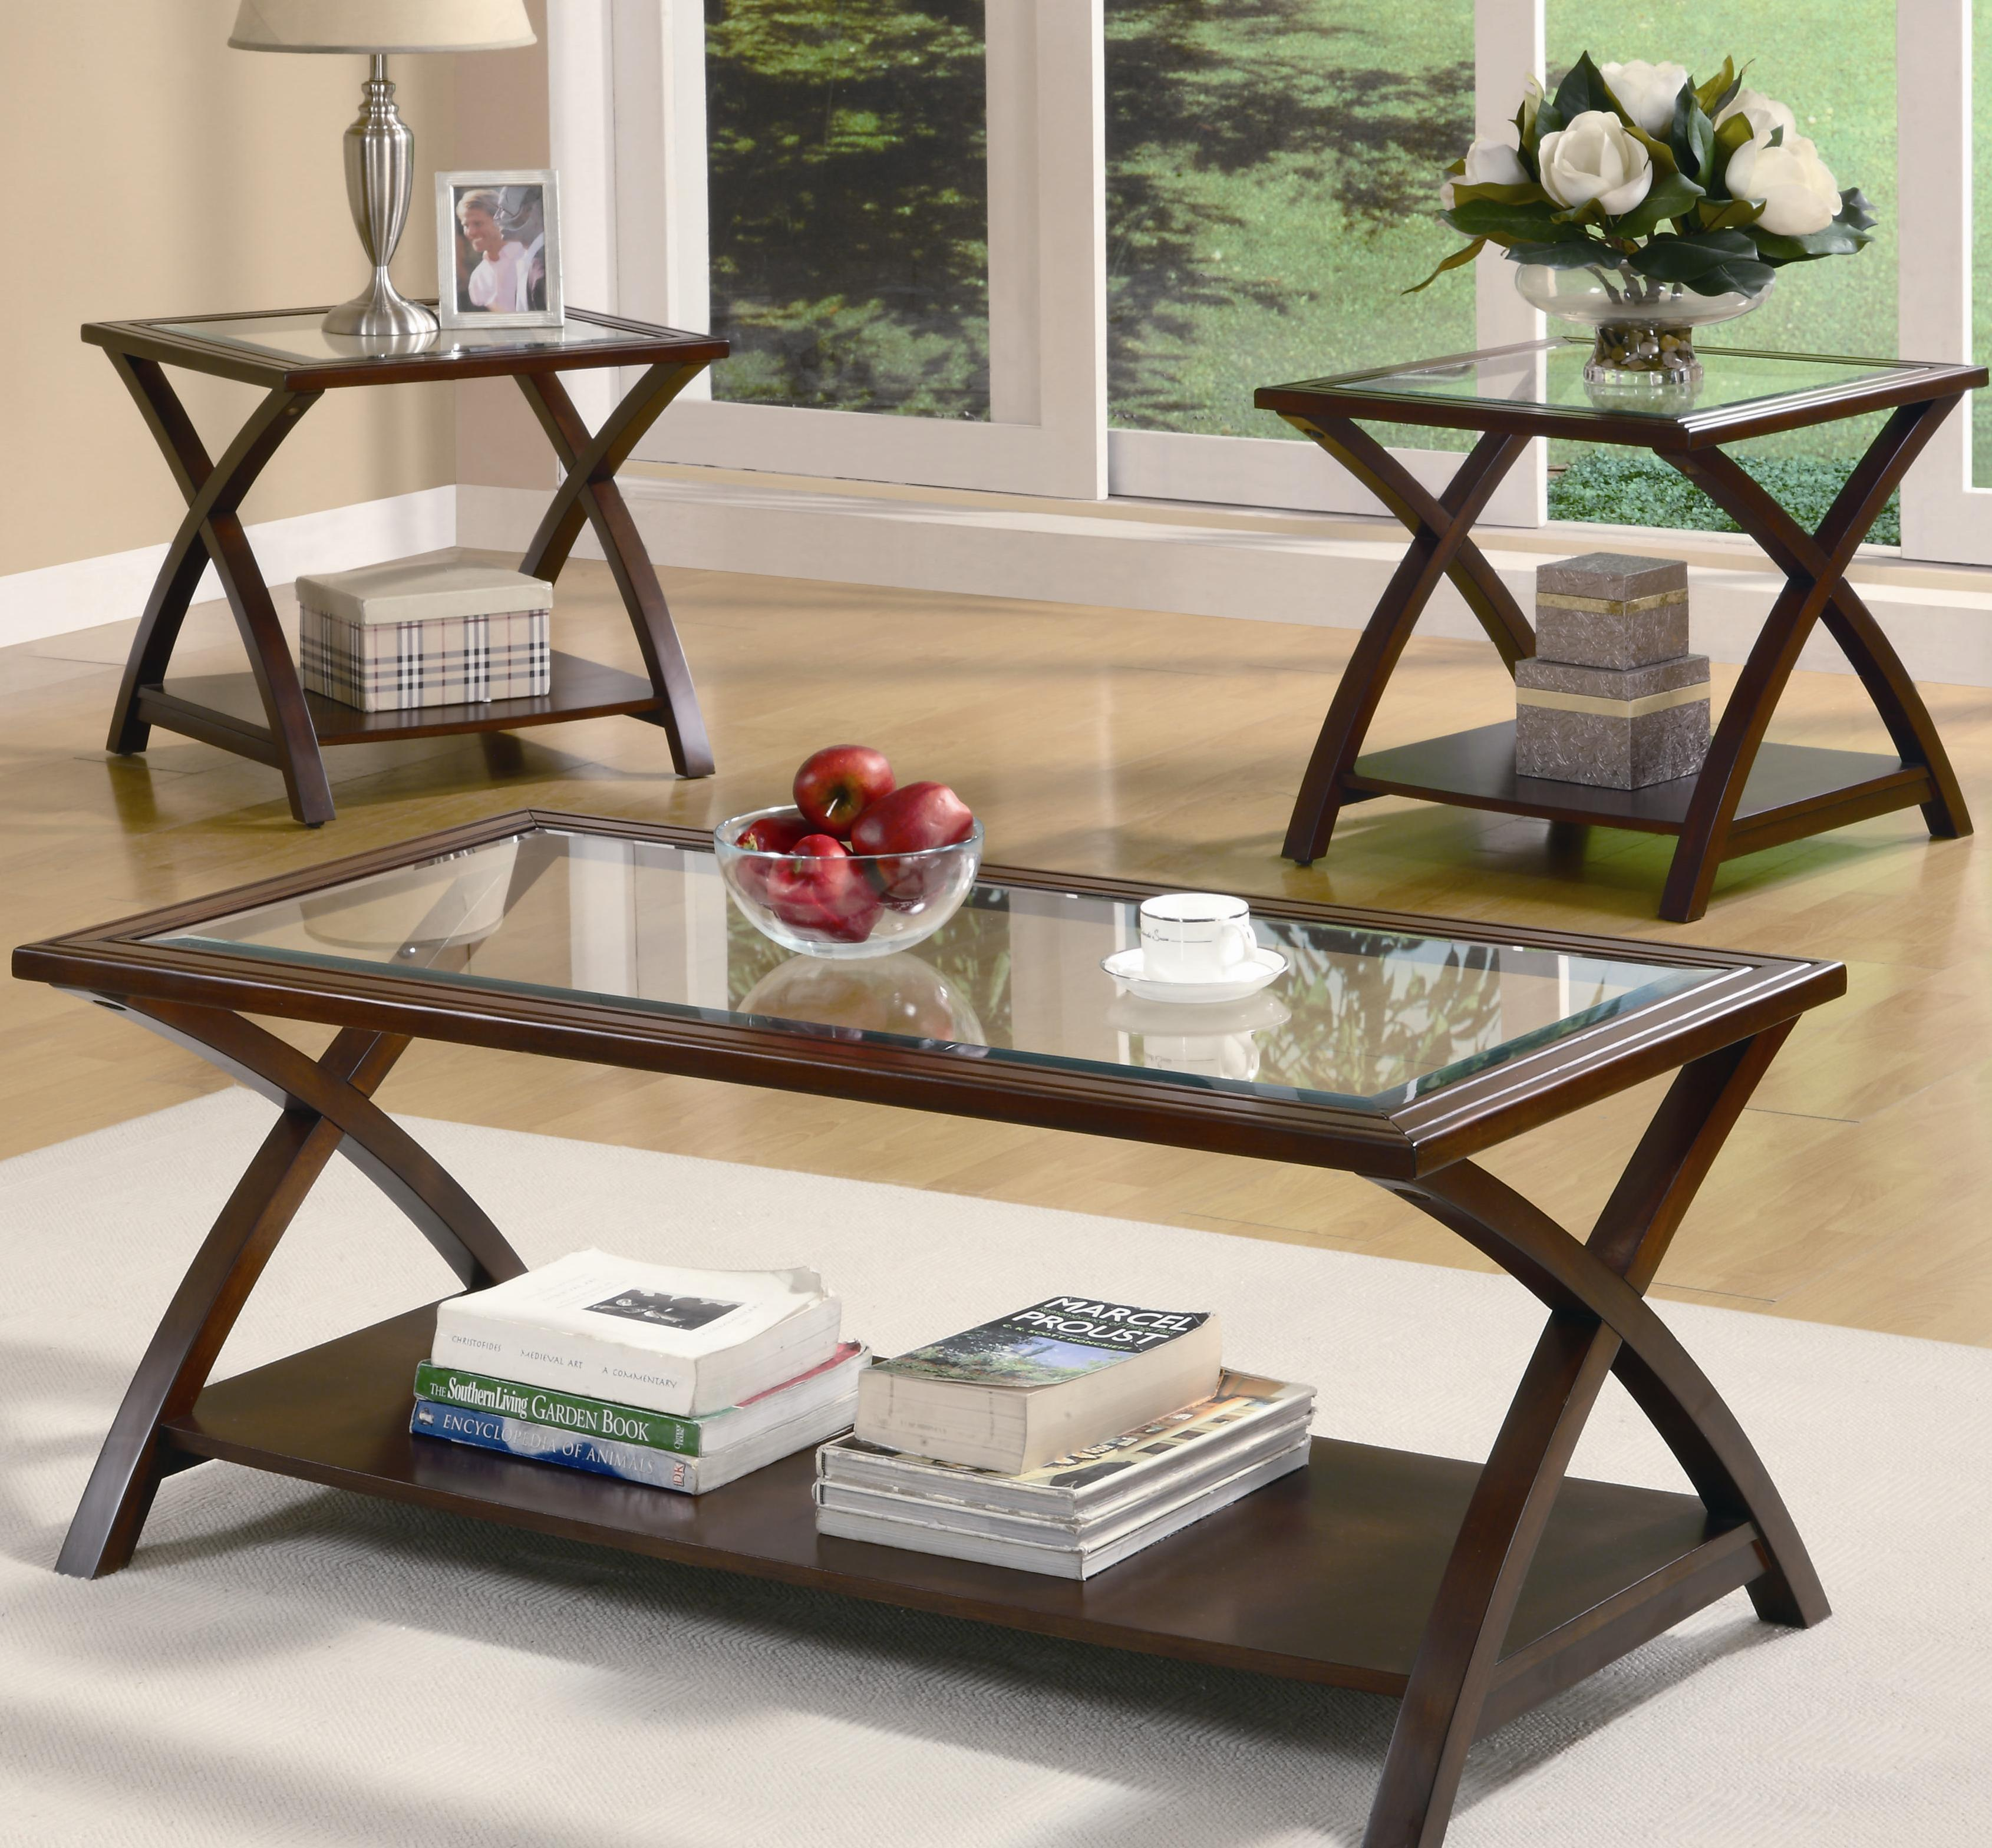 Coaster Occasional Table Sets 3 PC Occasional Group - Item Number 701527 & Coaster Occasional Table Sets Coffee Table and End Table Set | Value ...